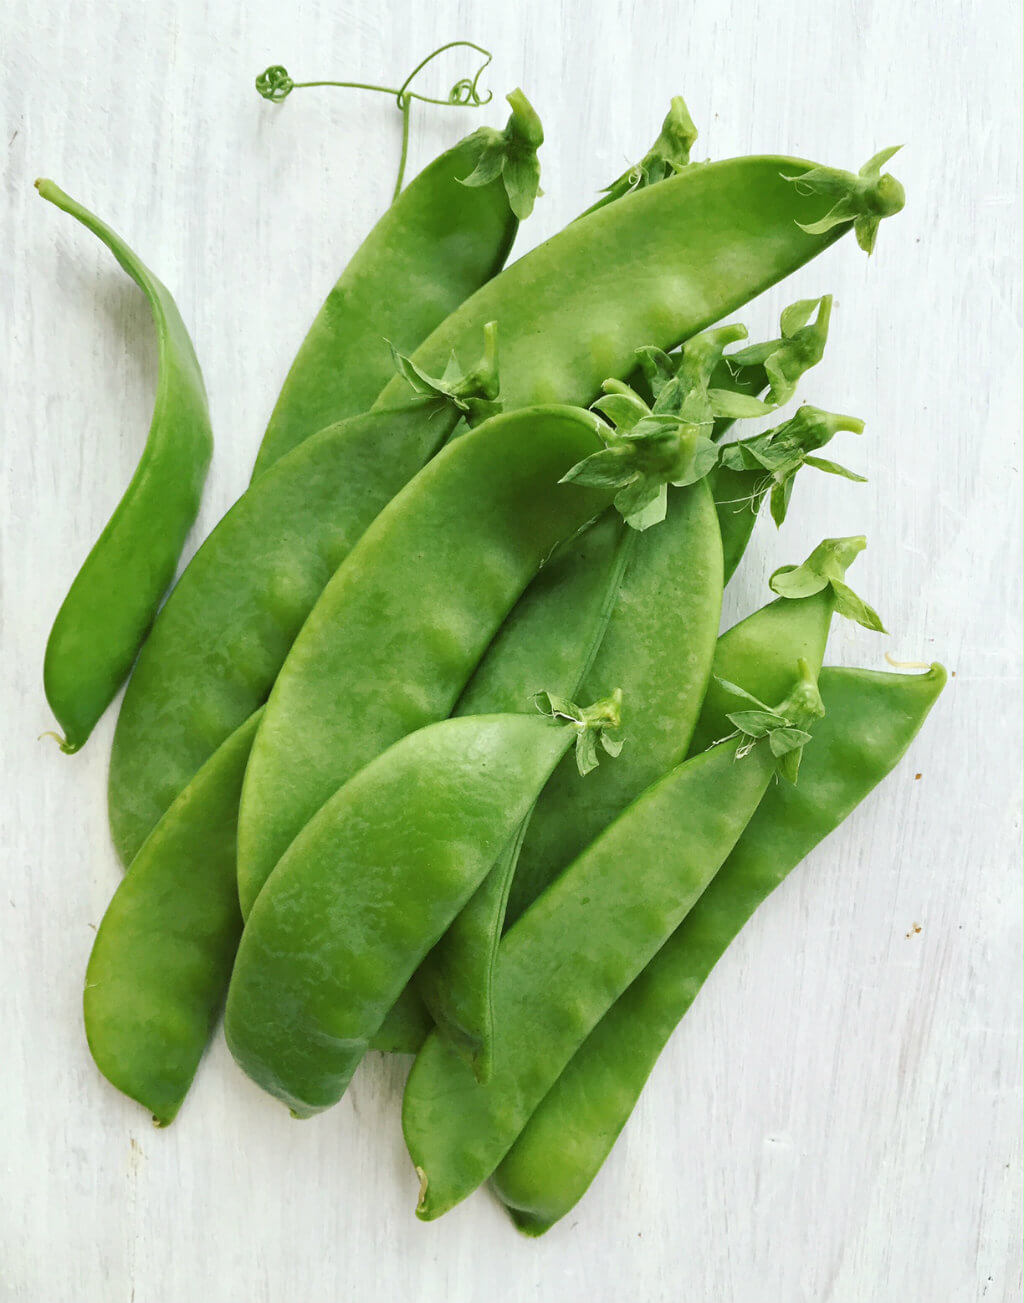 snow peas - pick of the week